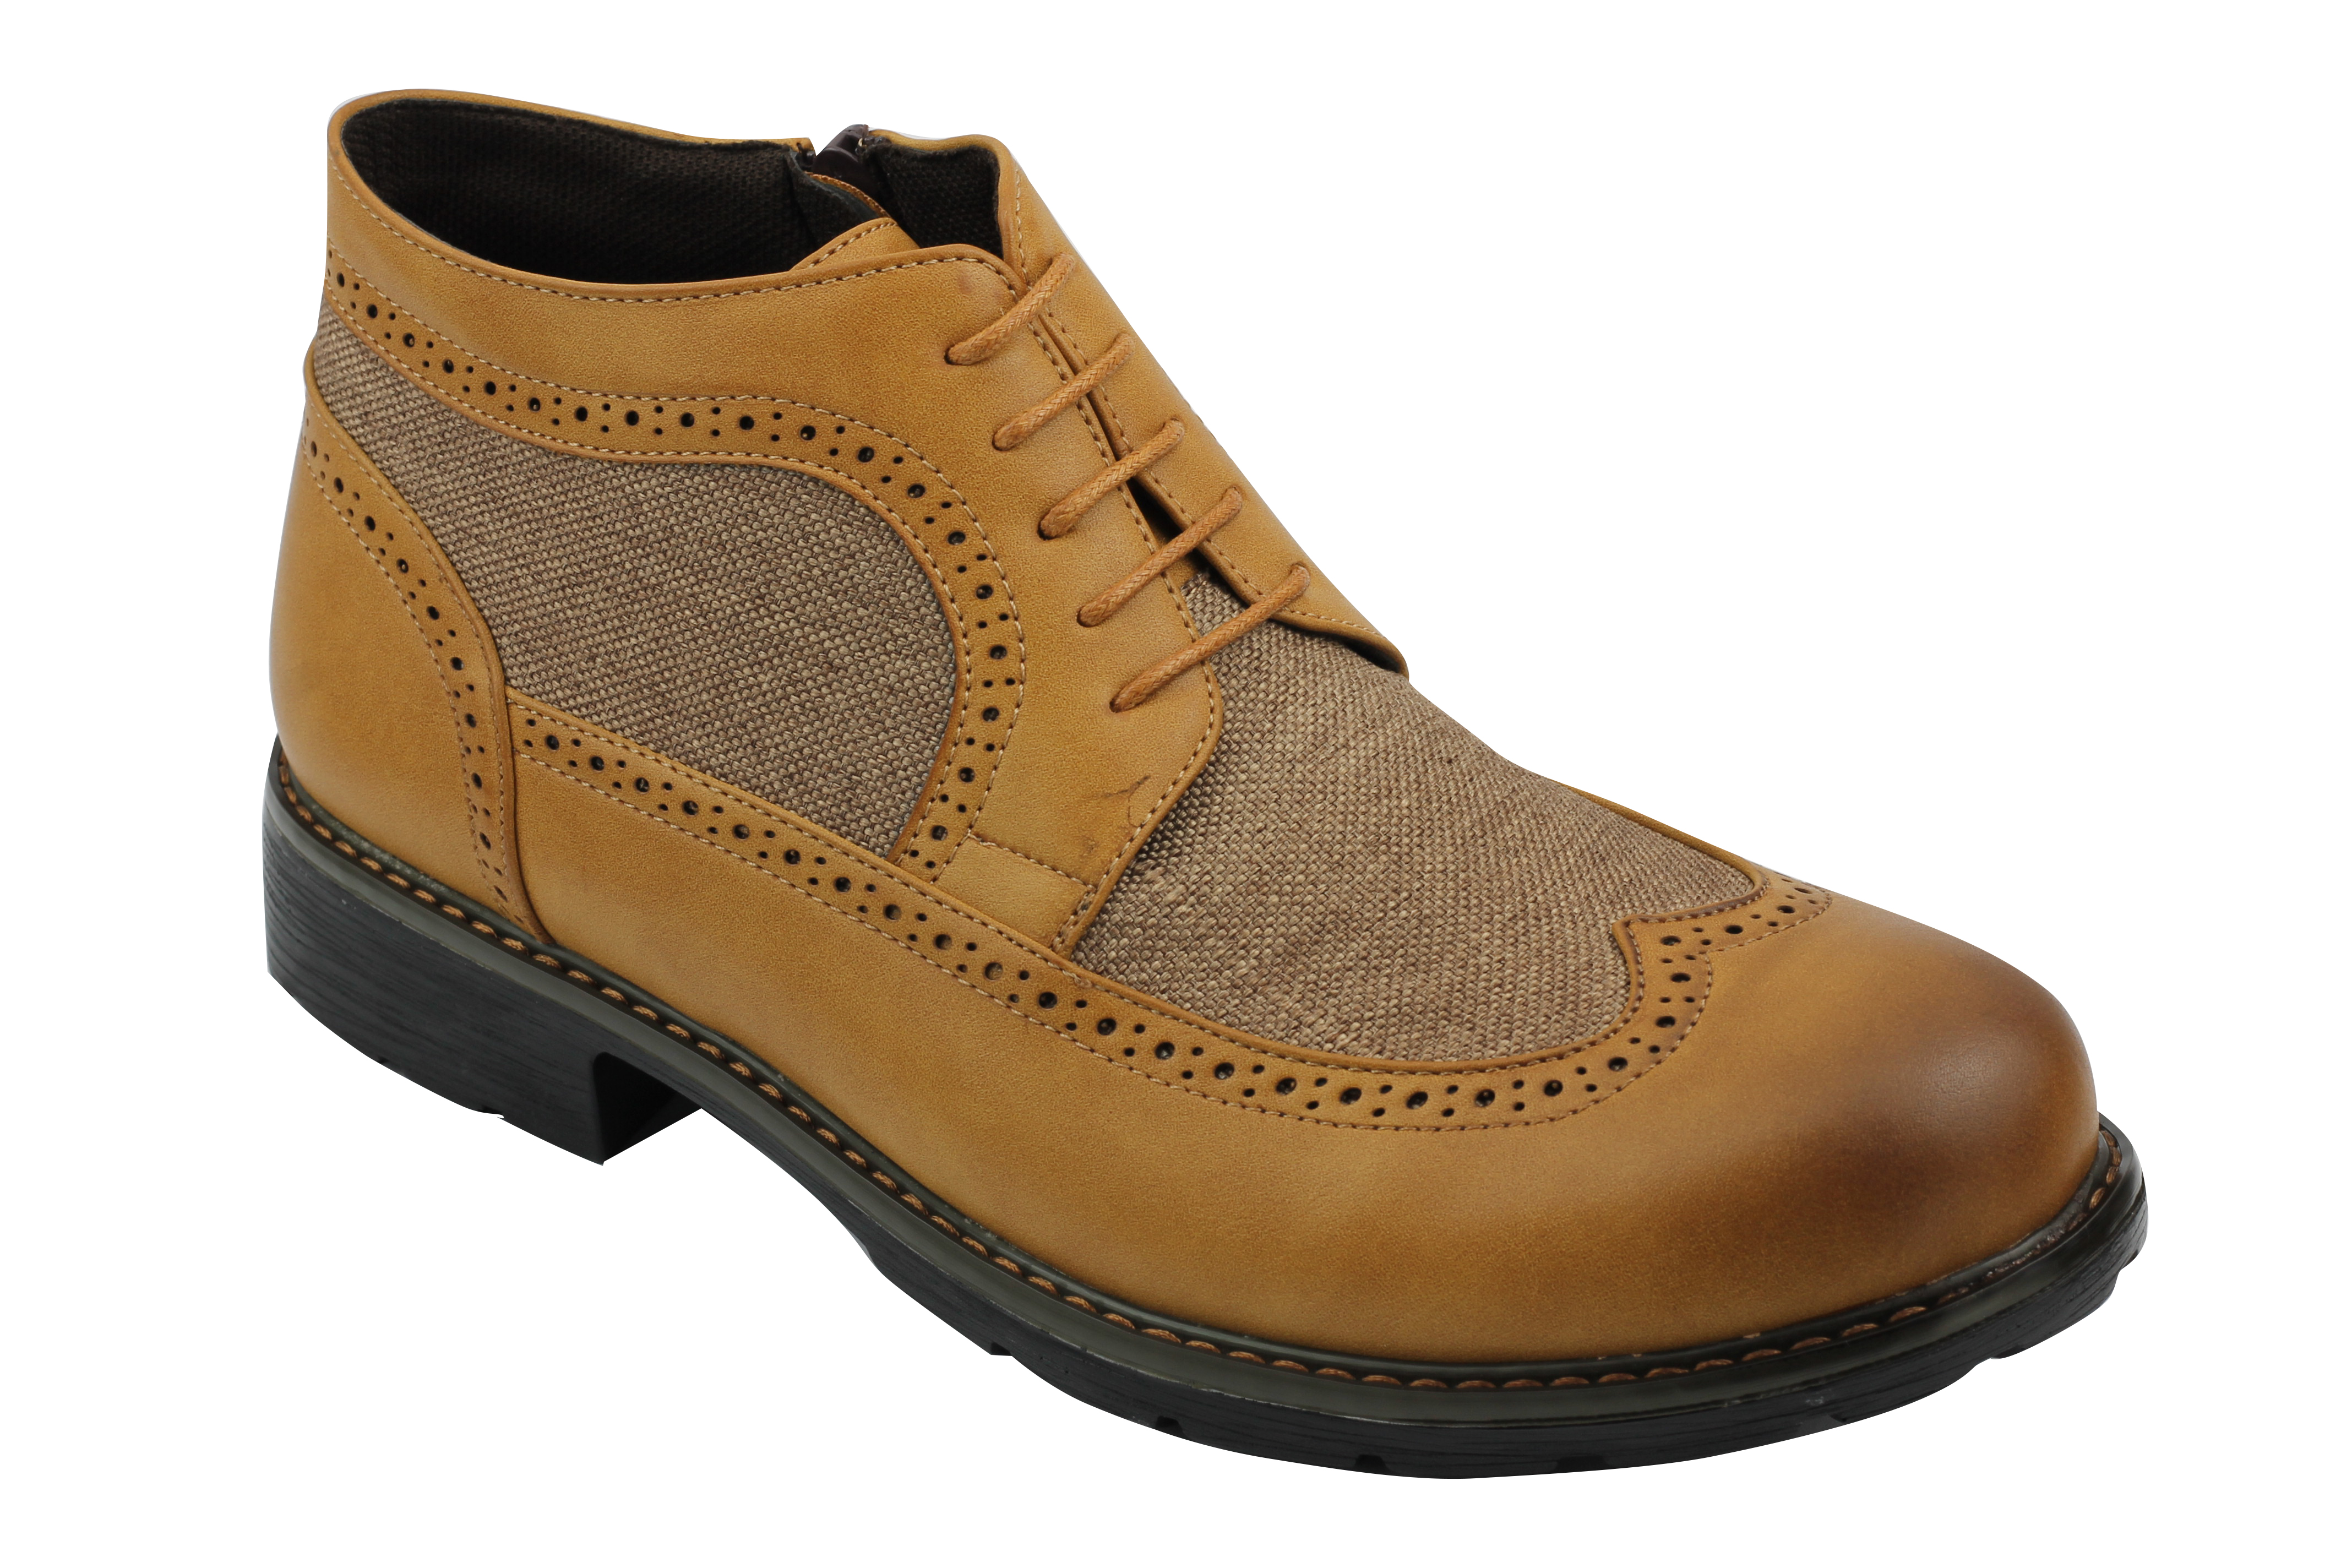 Mens Faux Leather /& Canvas Boots Vintage Smart Casual Lace up Zipped Ankle Shoes